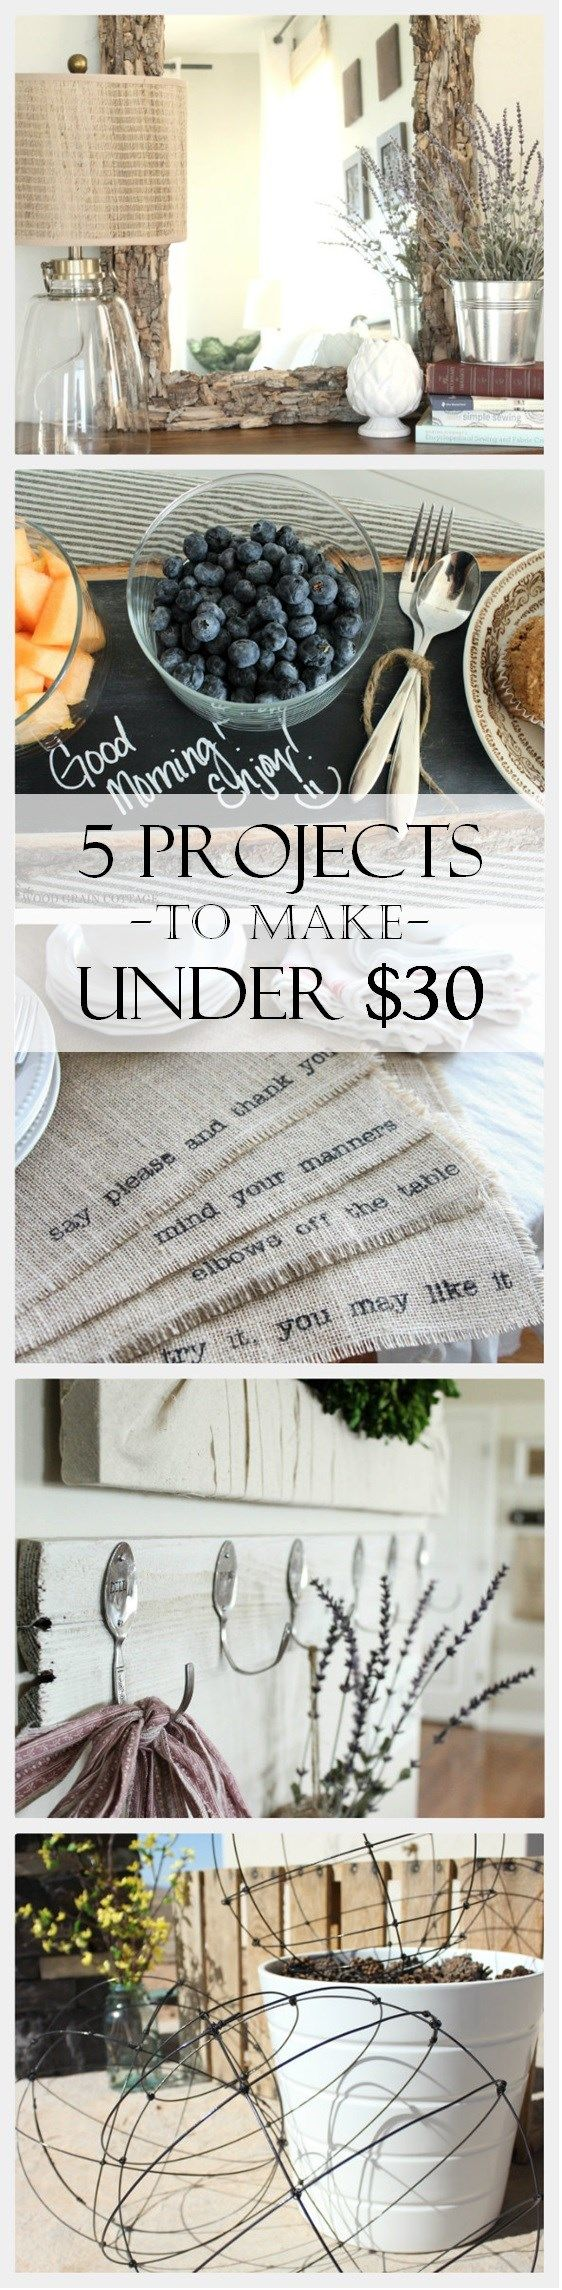 5 DIY Projects to Make: All Under $30~ via www.thewoodgrain.cottage